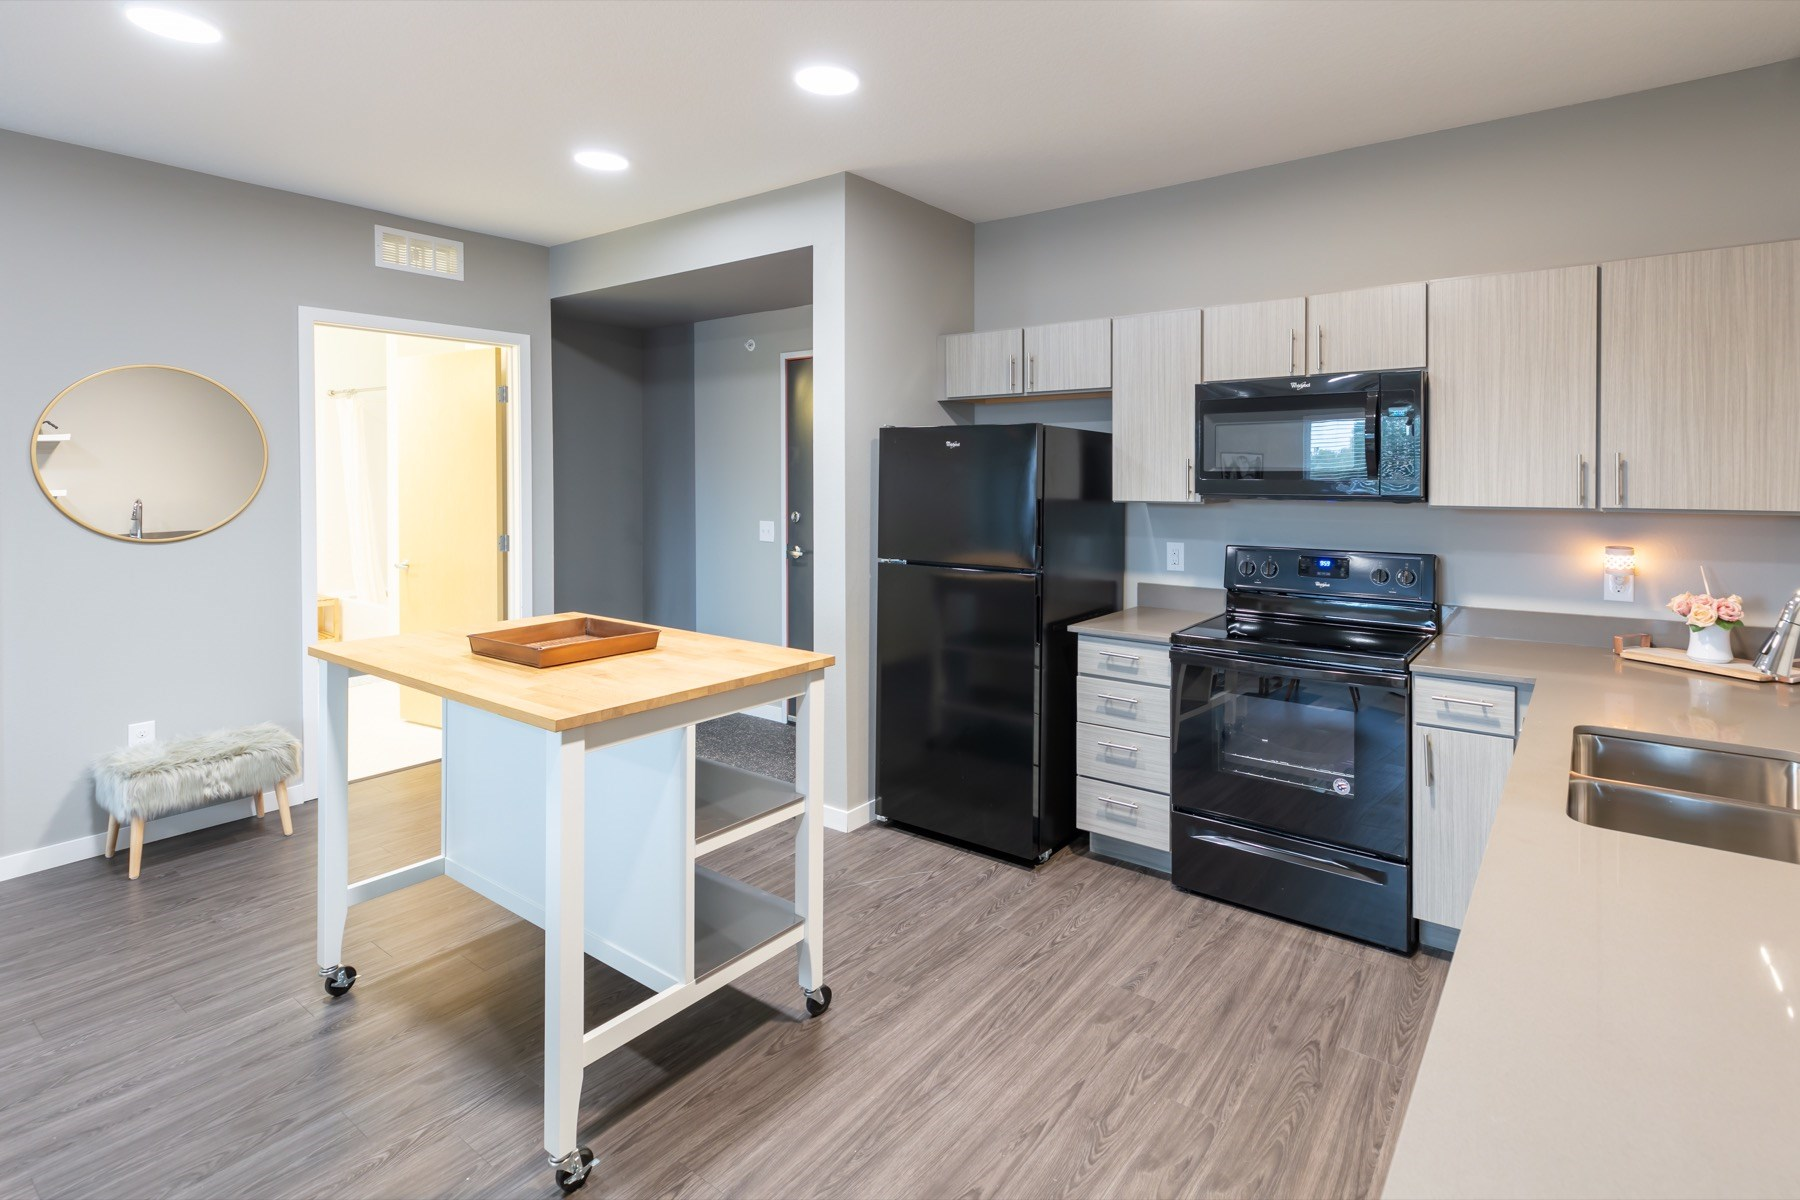 Large kitchen with moveable island